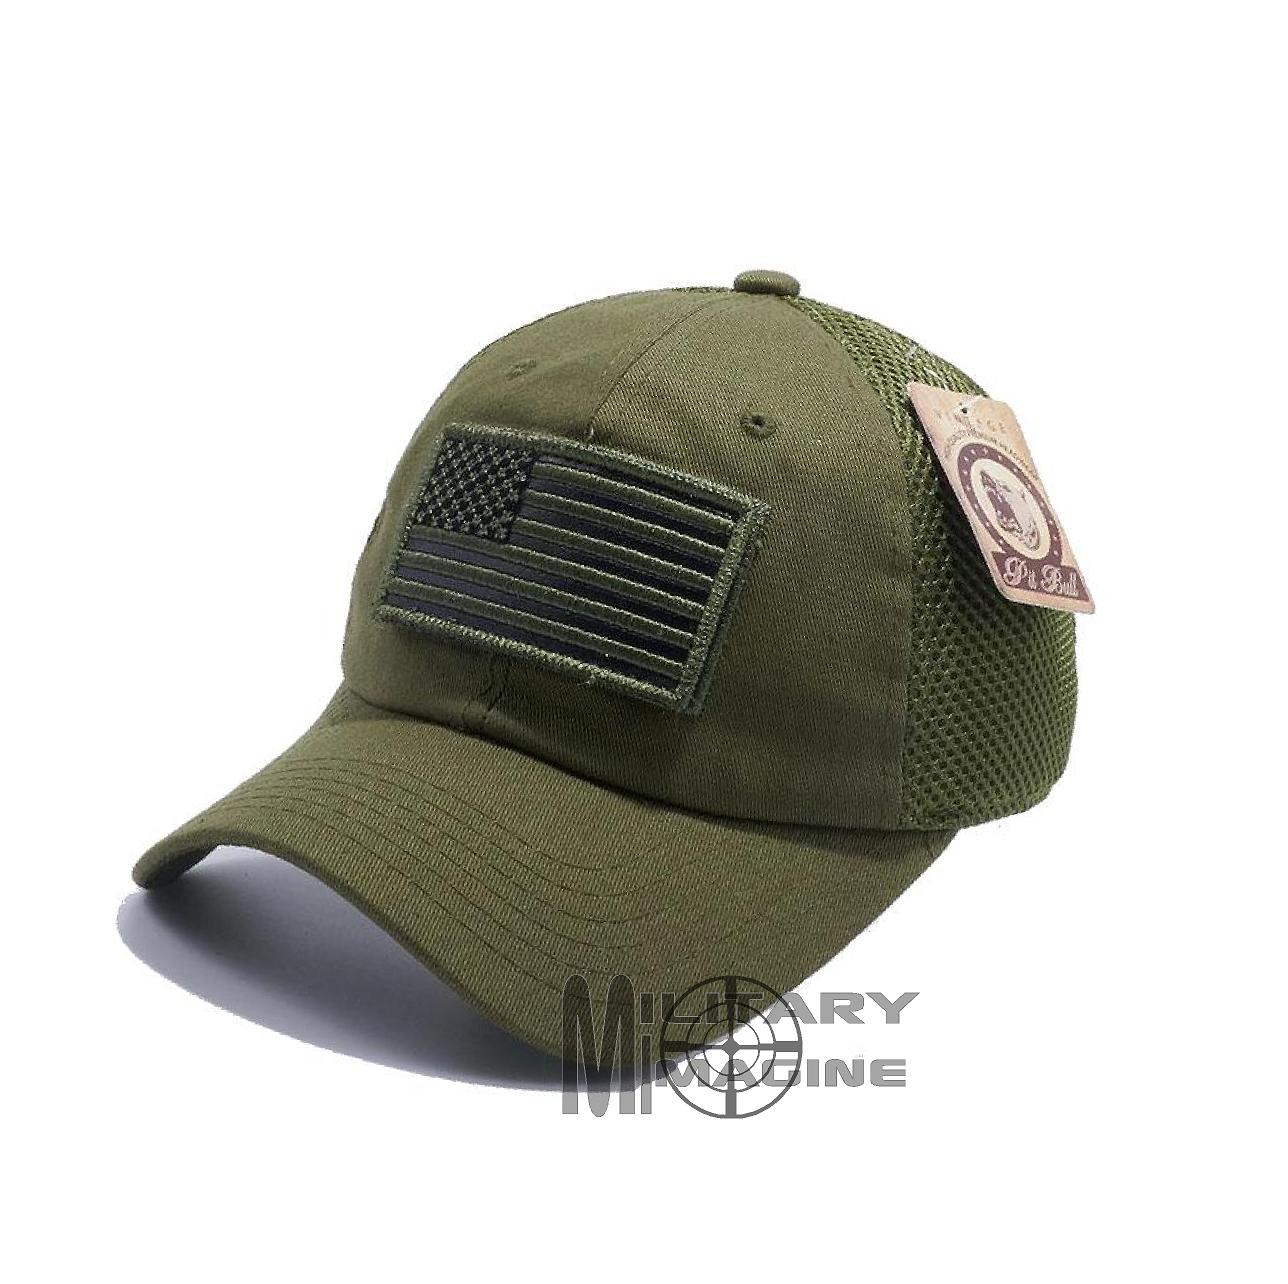 USA Flag hat Olive Green Patch Micro Mesh Tactical Operator Military ... c337185048b